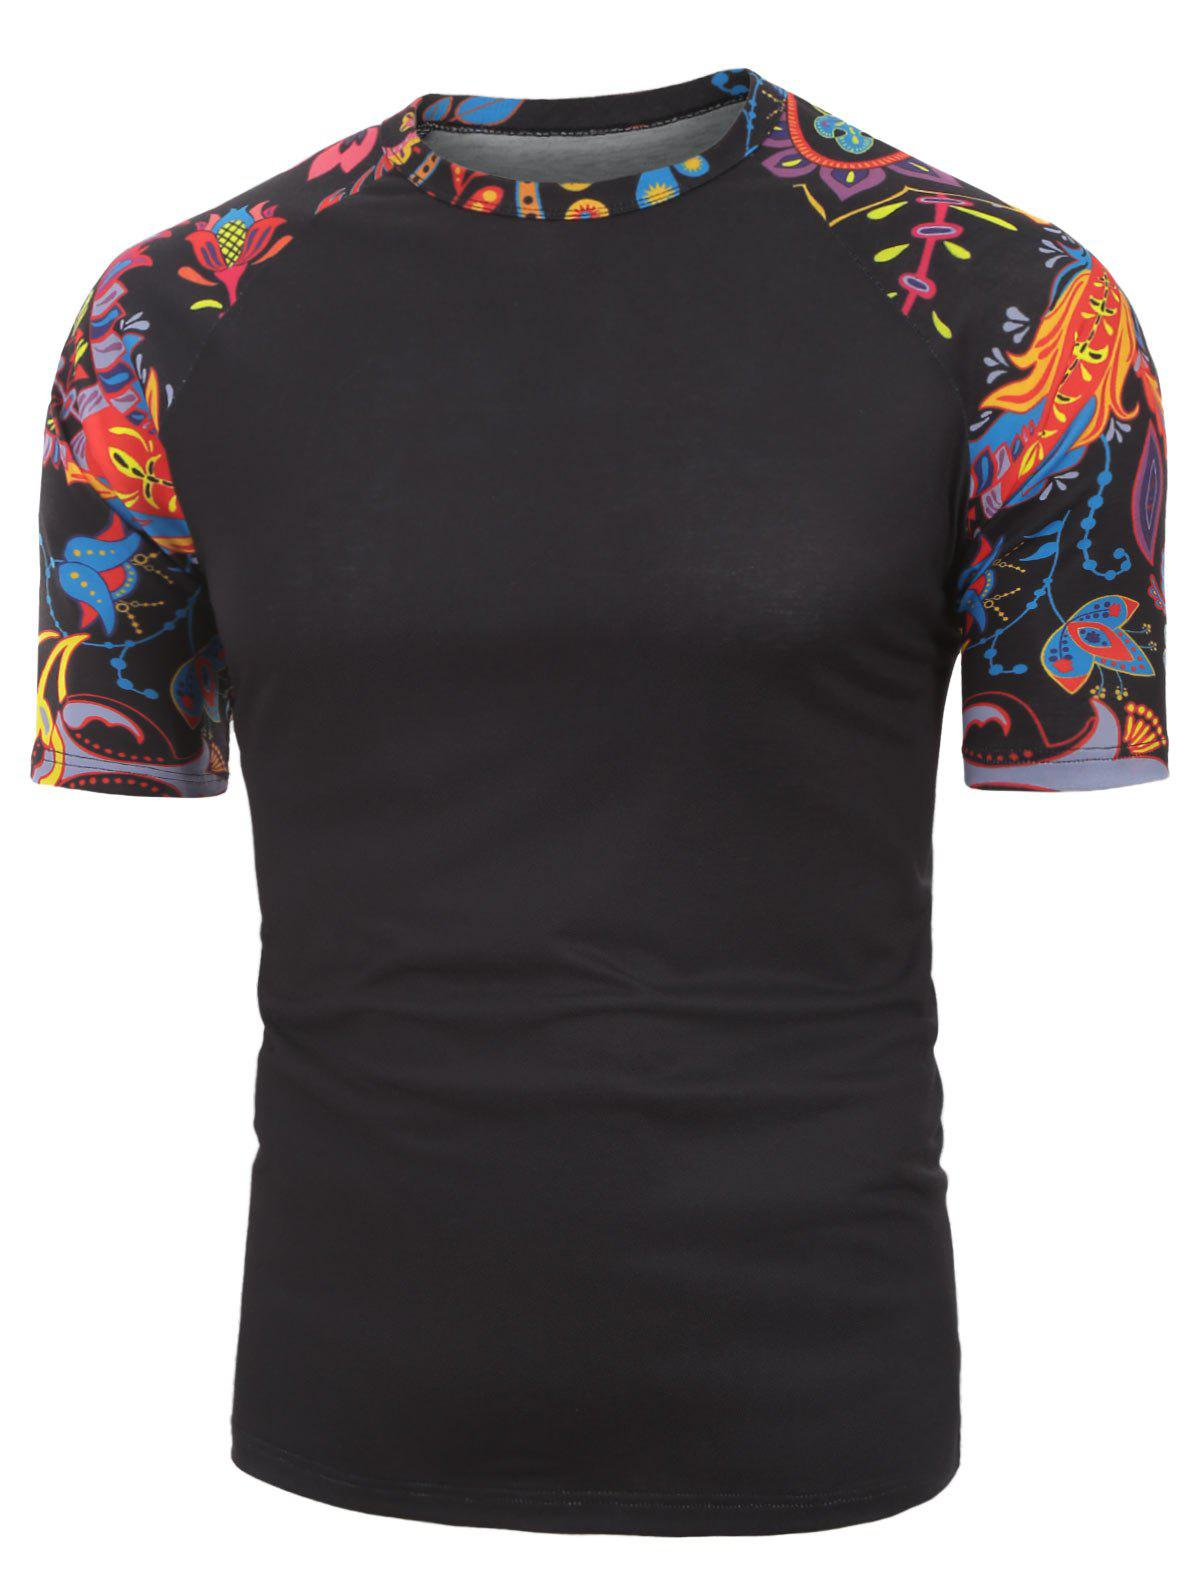 Chic Floral Printed Leisure Short Sleeves T-shirt